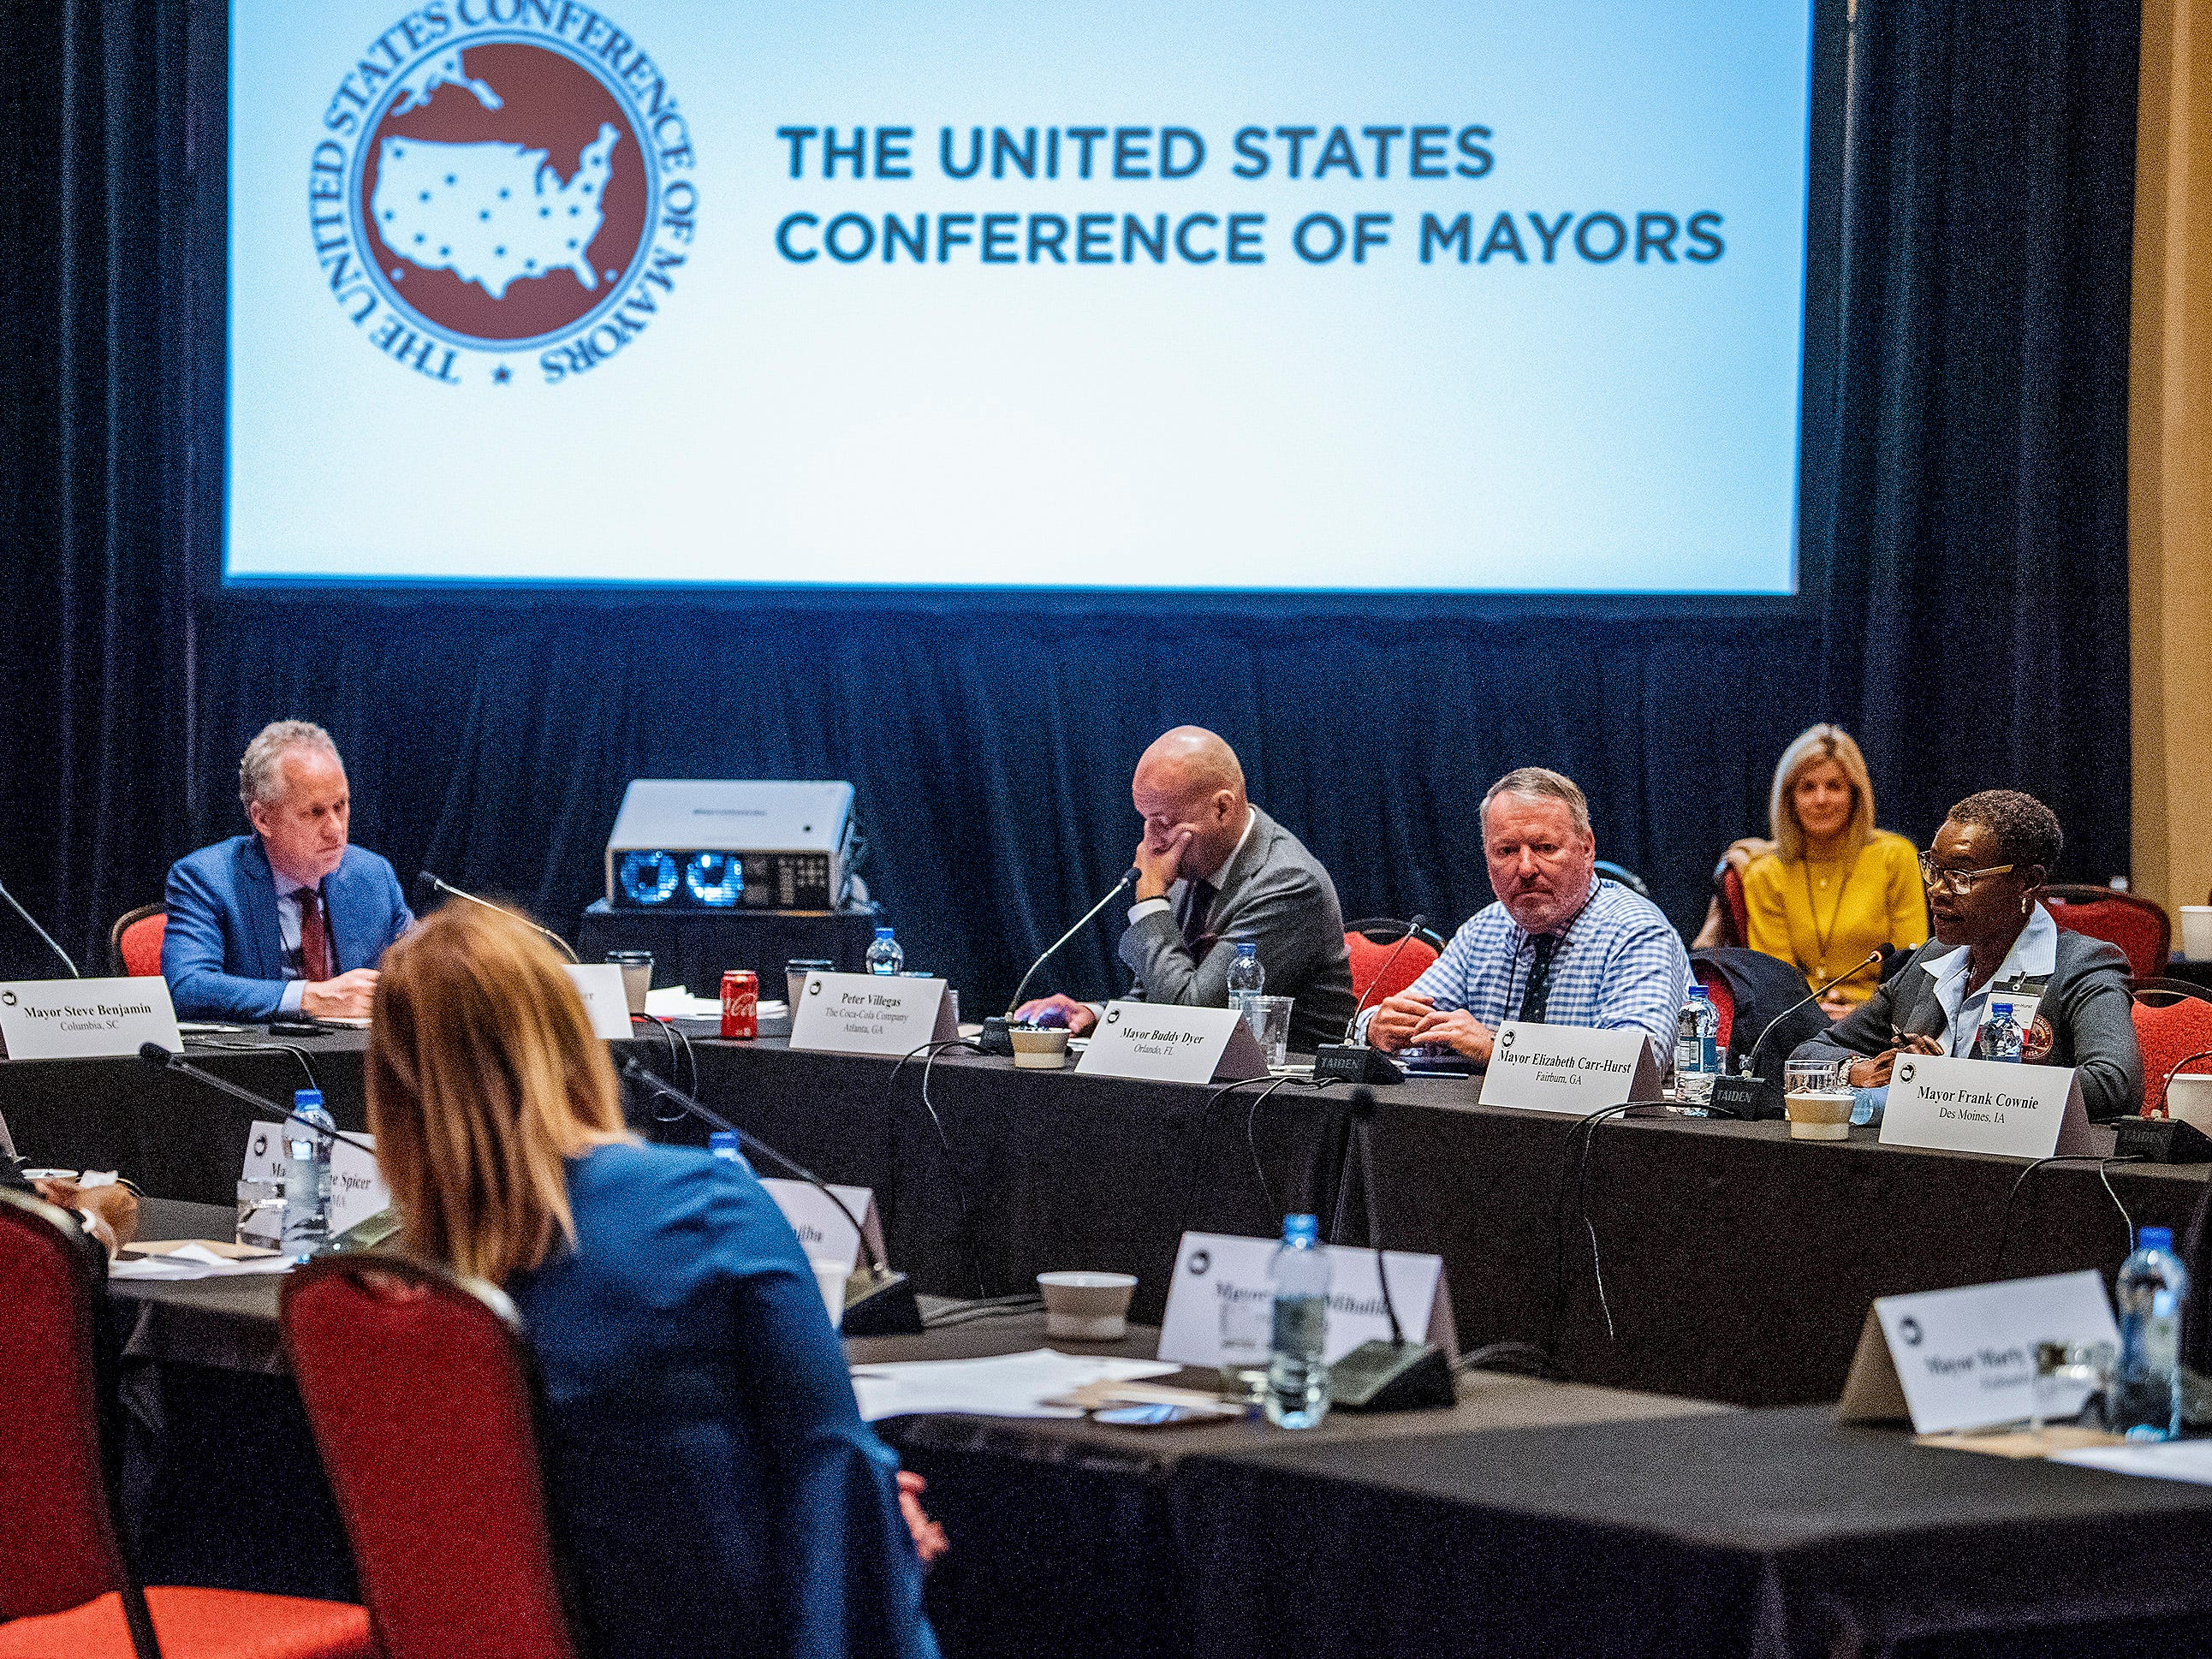 A summit of the U.S. Conference of Mayors meets in Montgomery, Ala., on Wednesday November 14, 2018 to address extremism, bigotry and divisiveness.